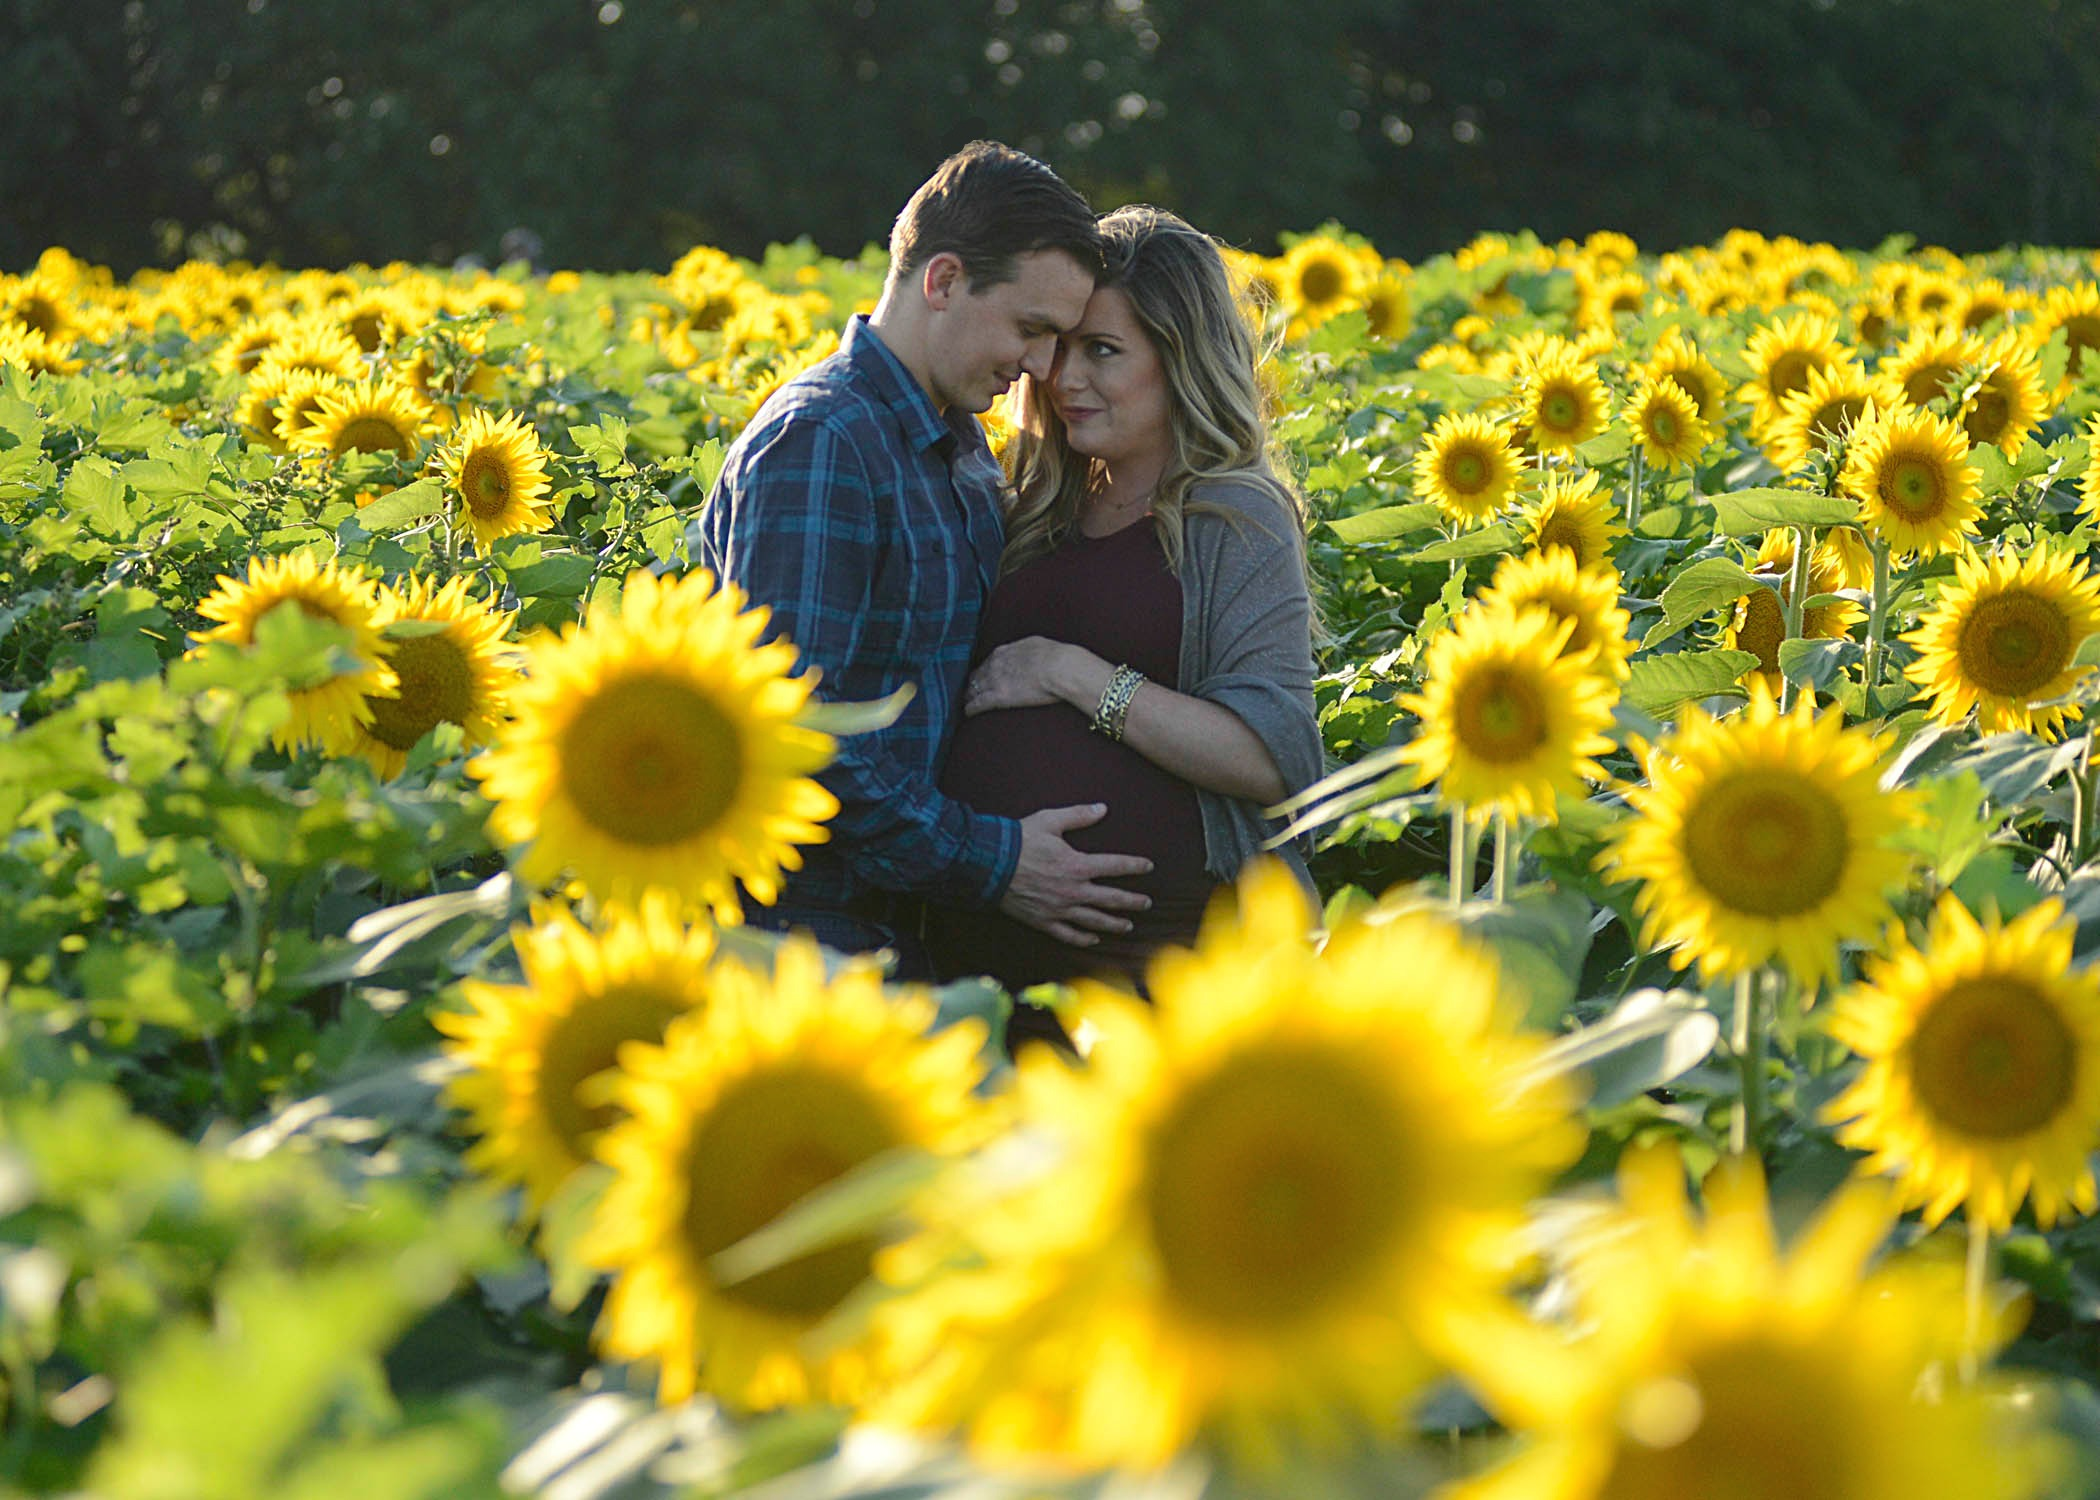 Fall Maternity Photos in a sunflower field in Kansas - Grinter Farms